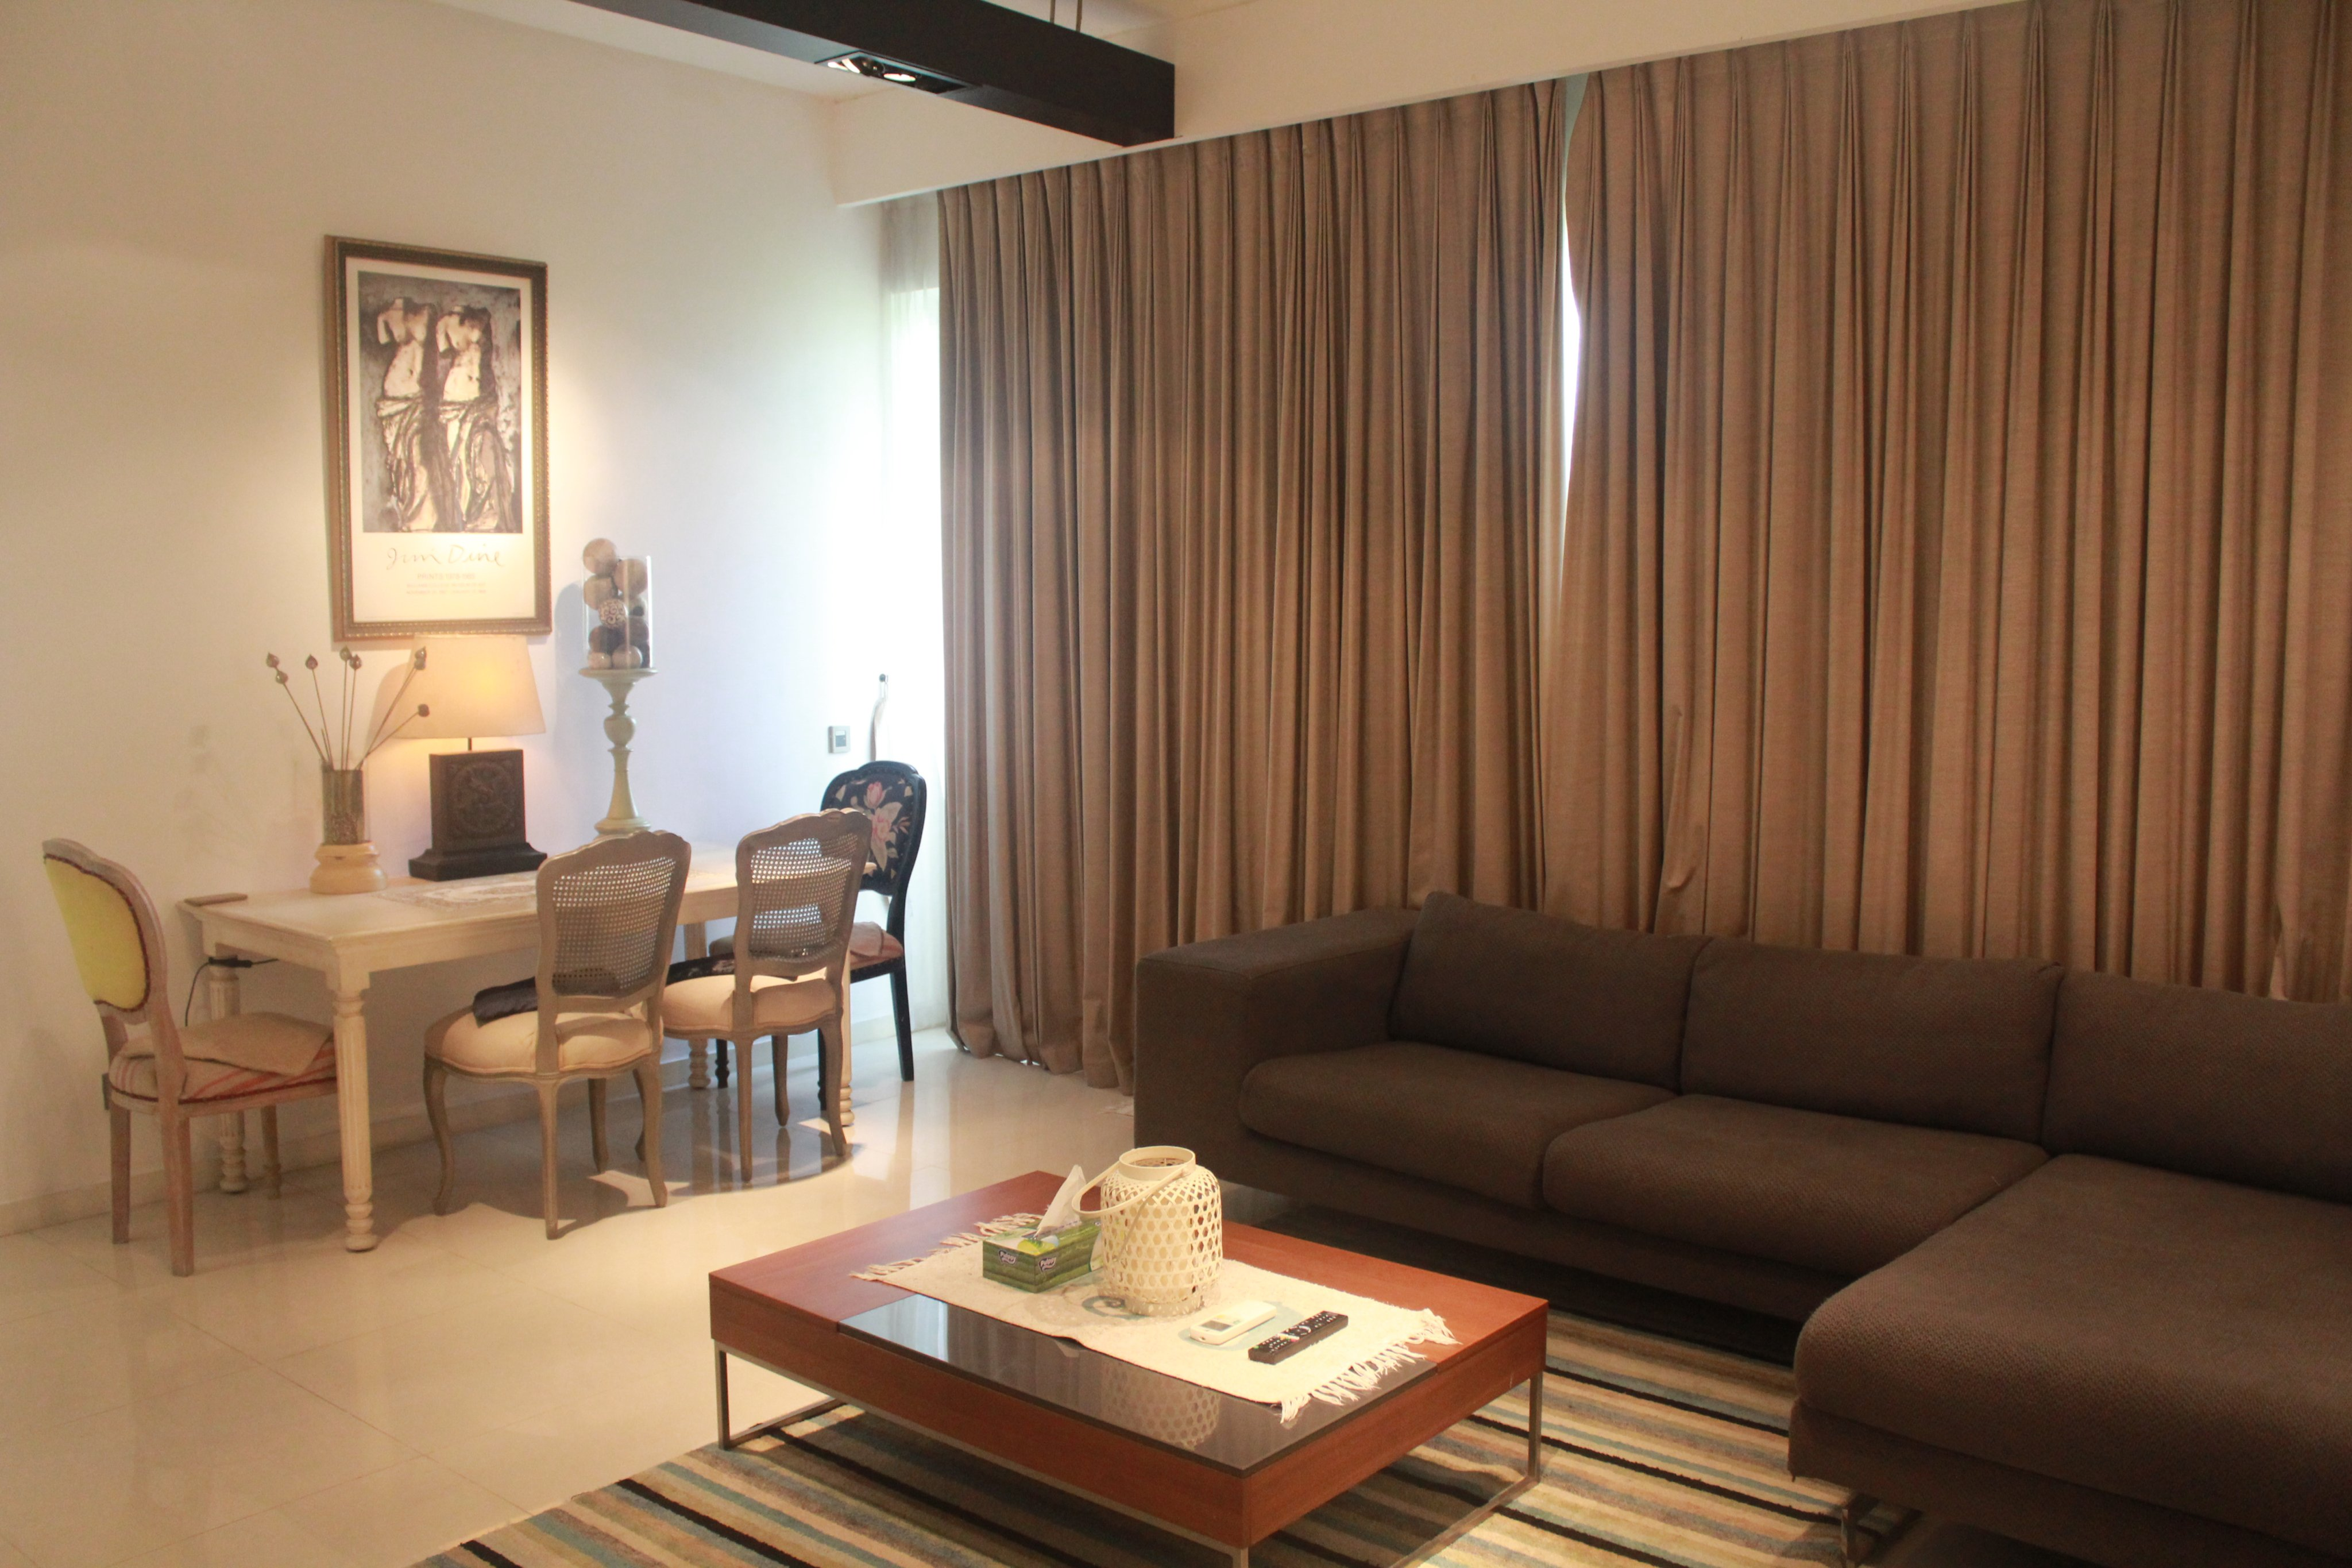 saigon pearl apartment for rent in binh thanh district hcmc D201237(7)